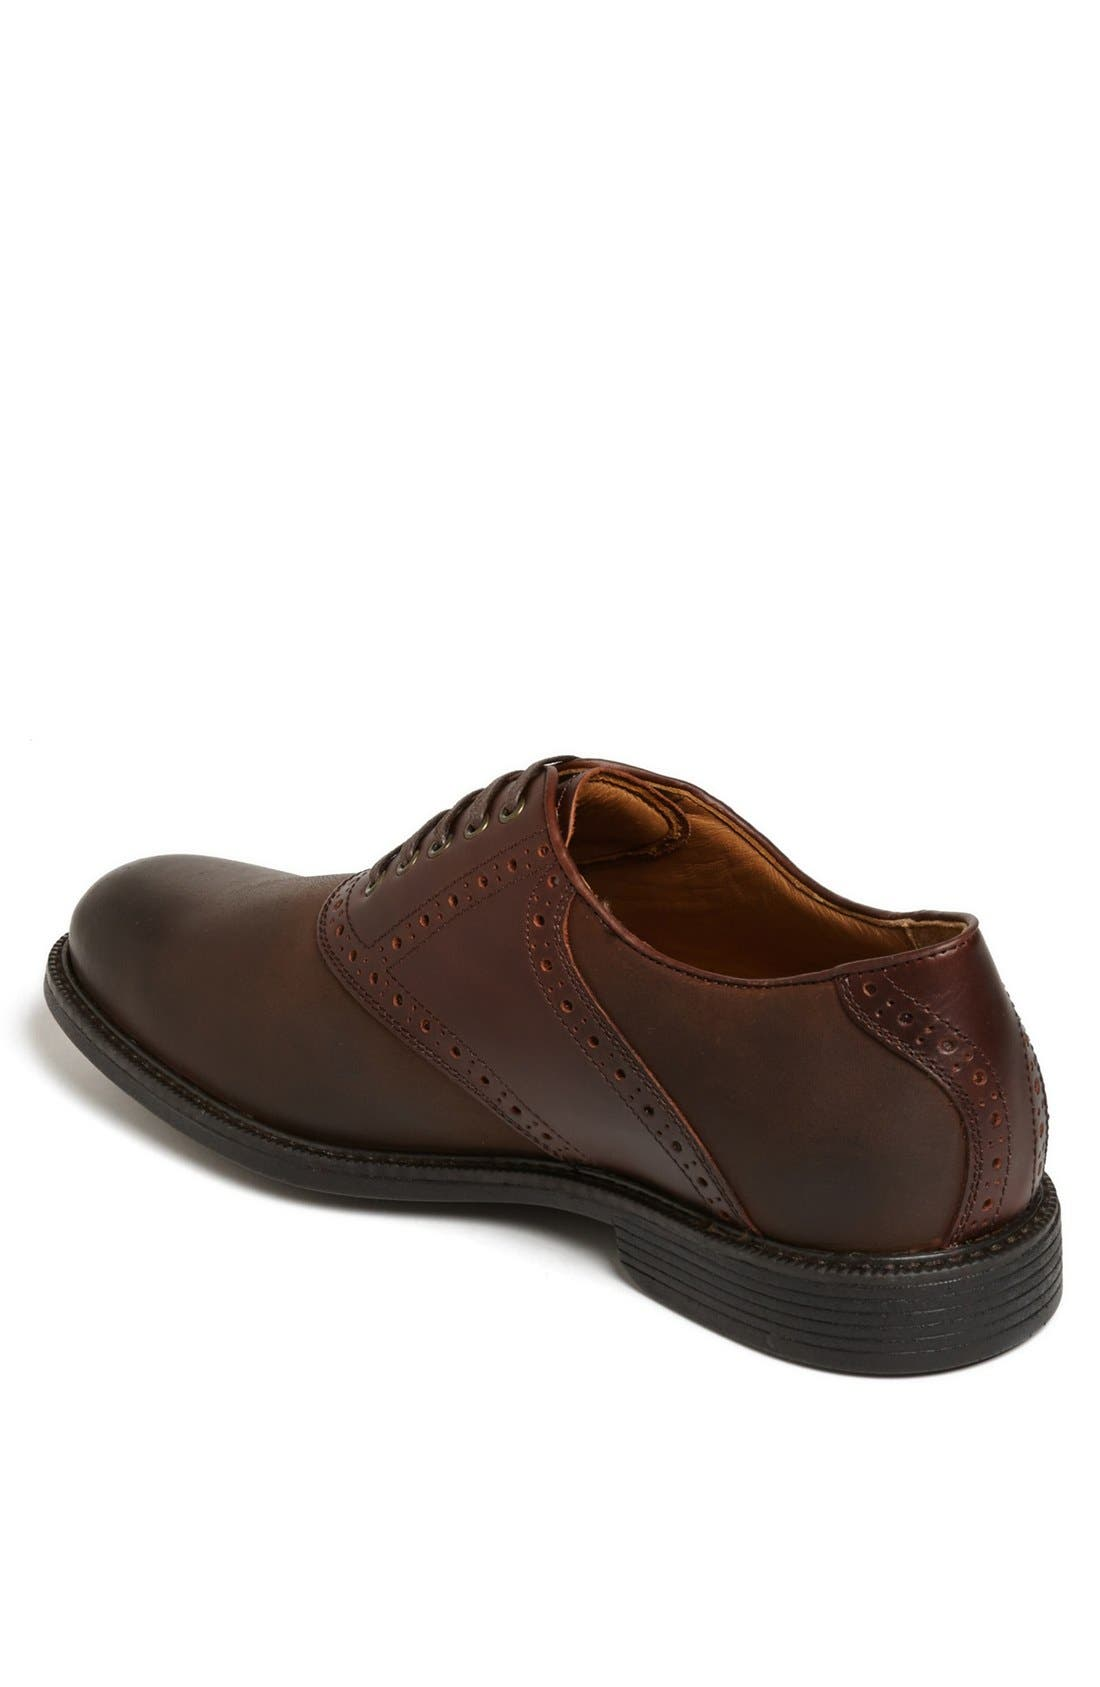 'Cardell' Waterproof Saddle Oxford,                             Alternate thumbnail 2, color,                             200